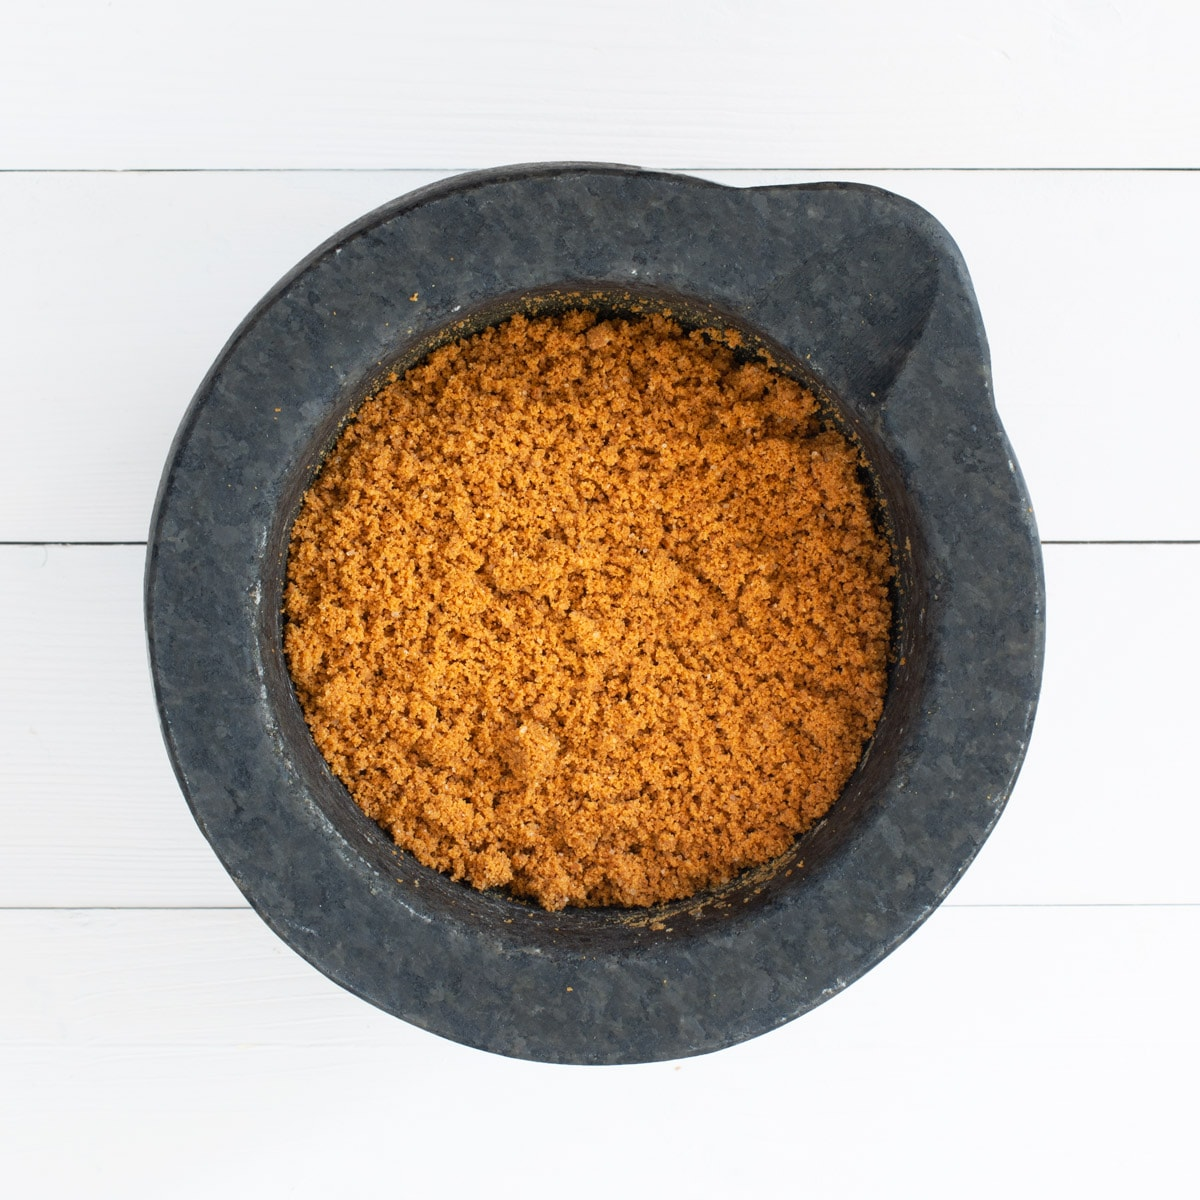 Finely ground Lotus Biscoff Biscuits in a mortar (stone grinding bowl)